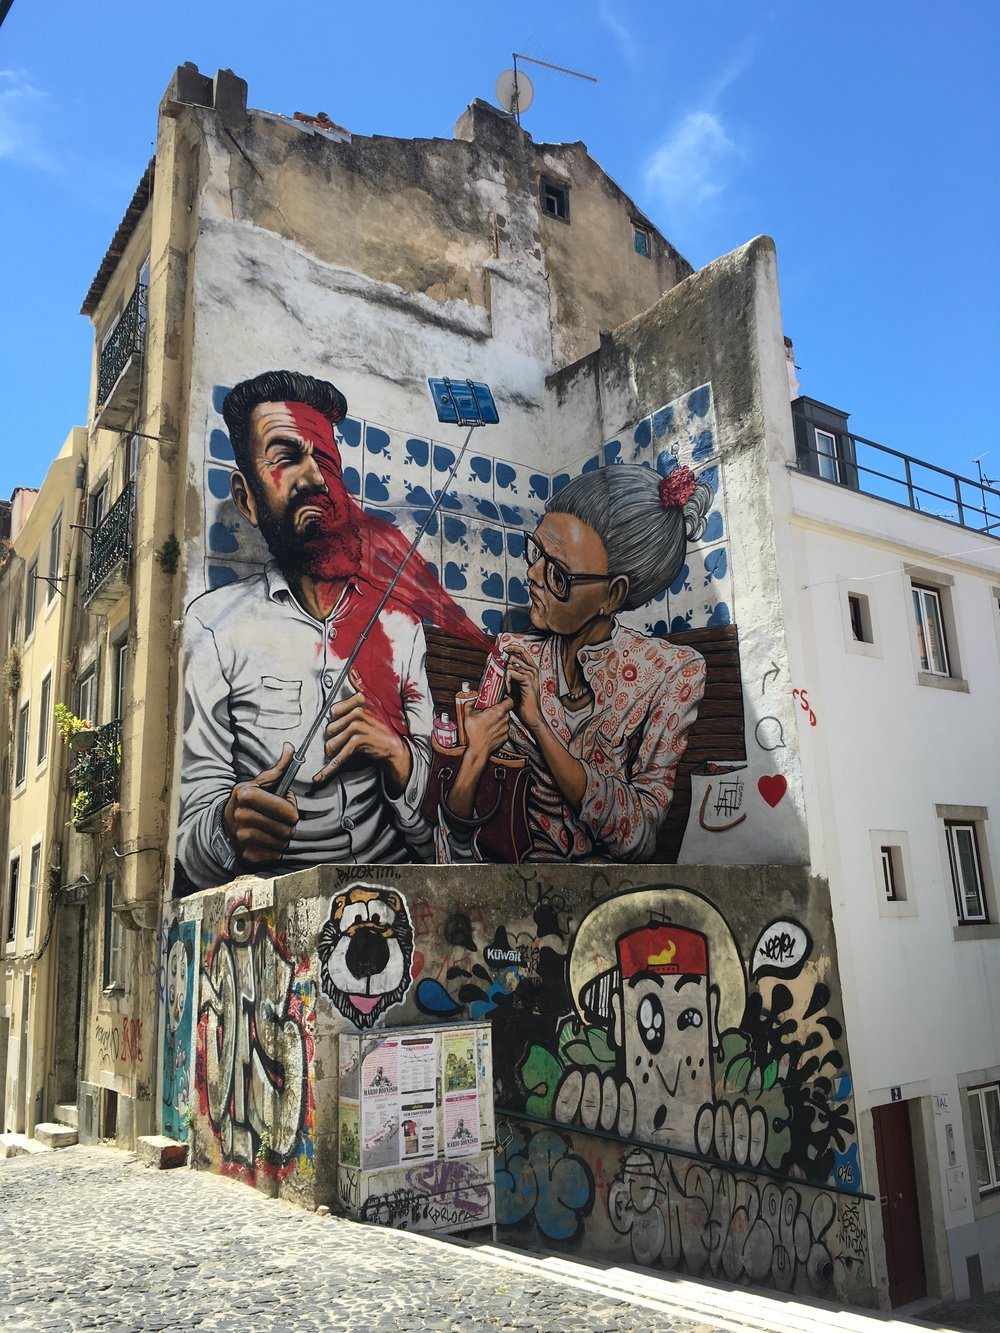 Street art and graffiti is ever present on Lisbon's storied walls. Photo by Justin Salhani.